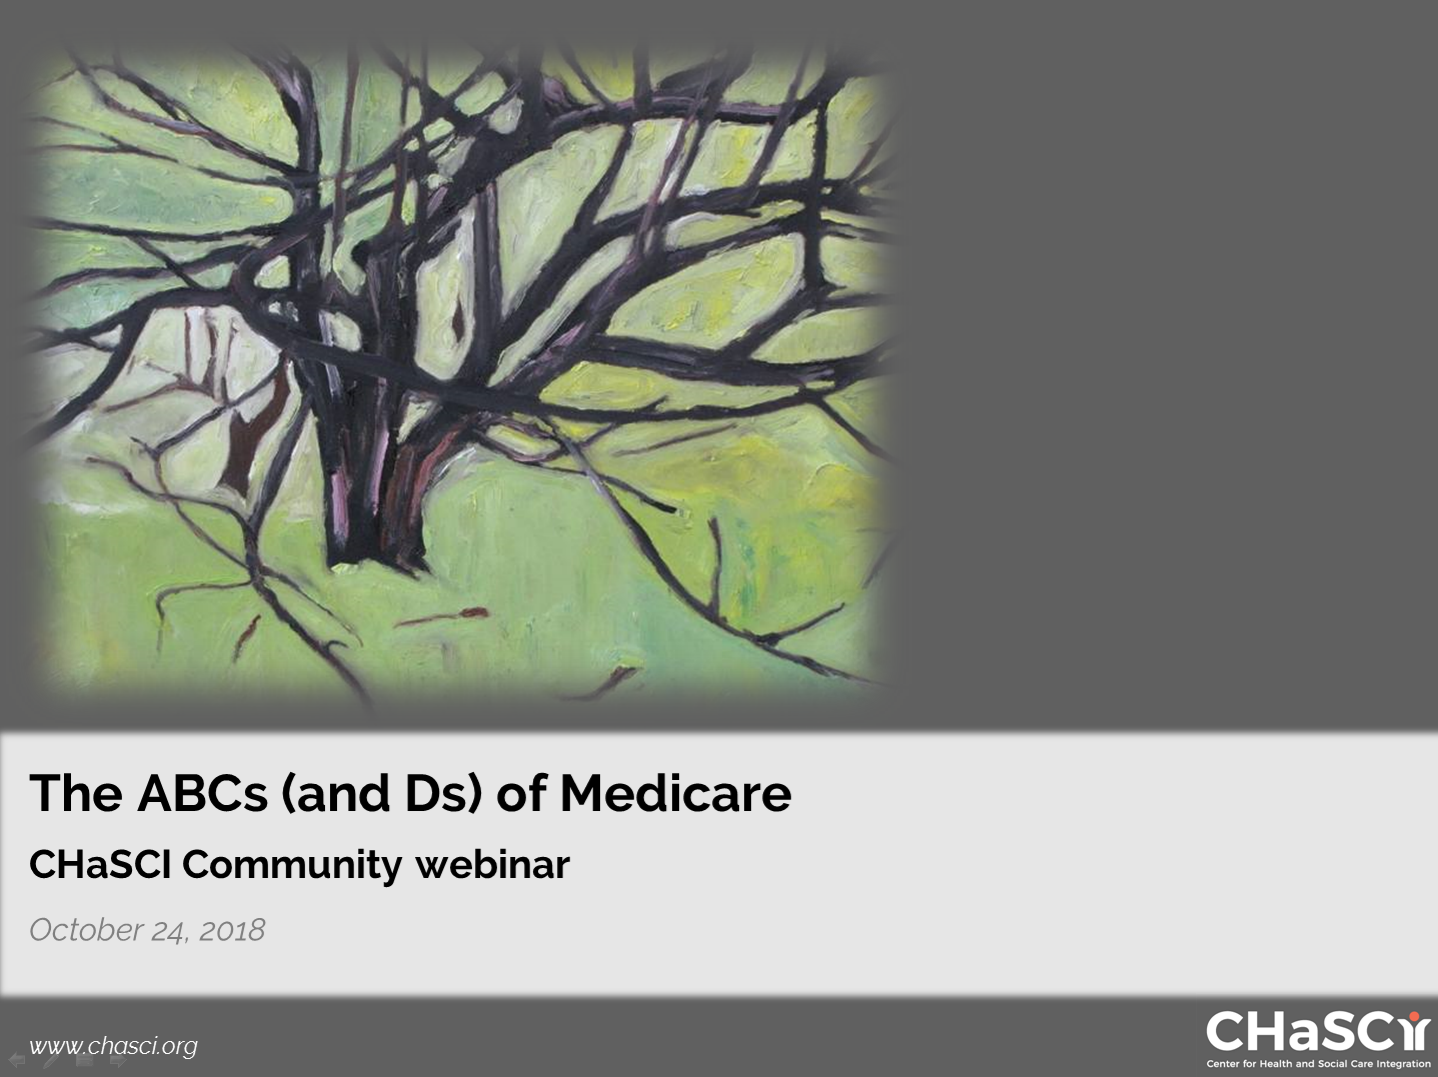 The ABCs (and Ds) of Medicare - October 2018 CHaSCI Community webinar